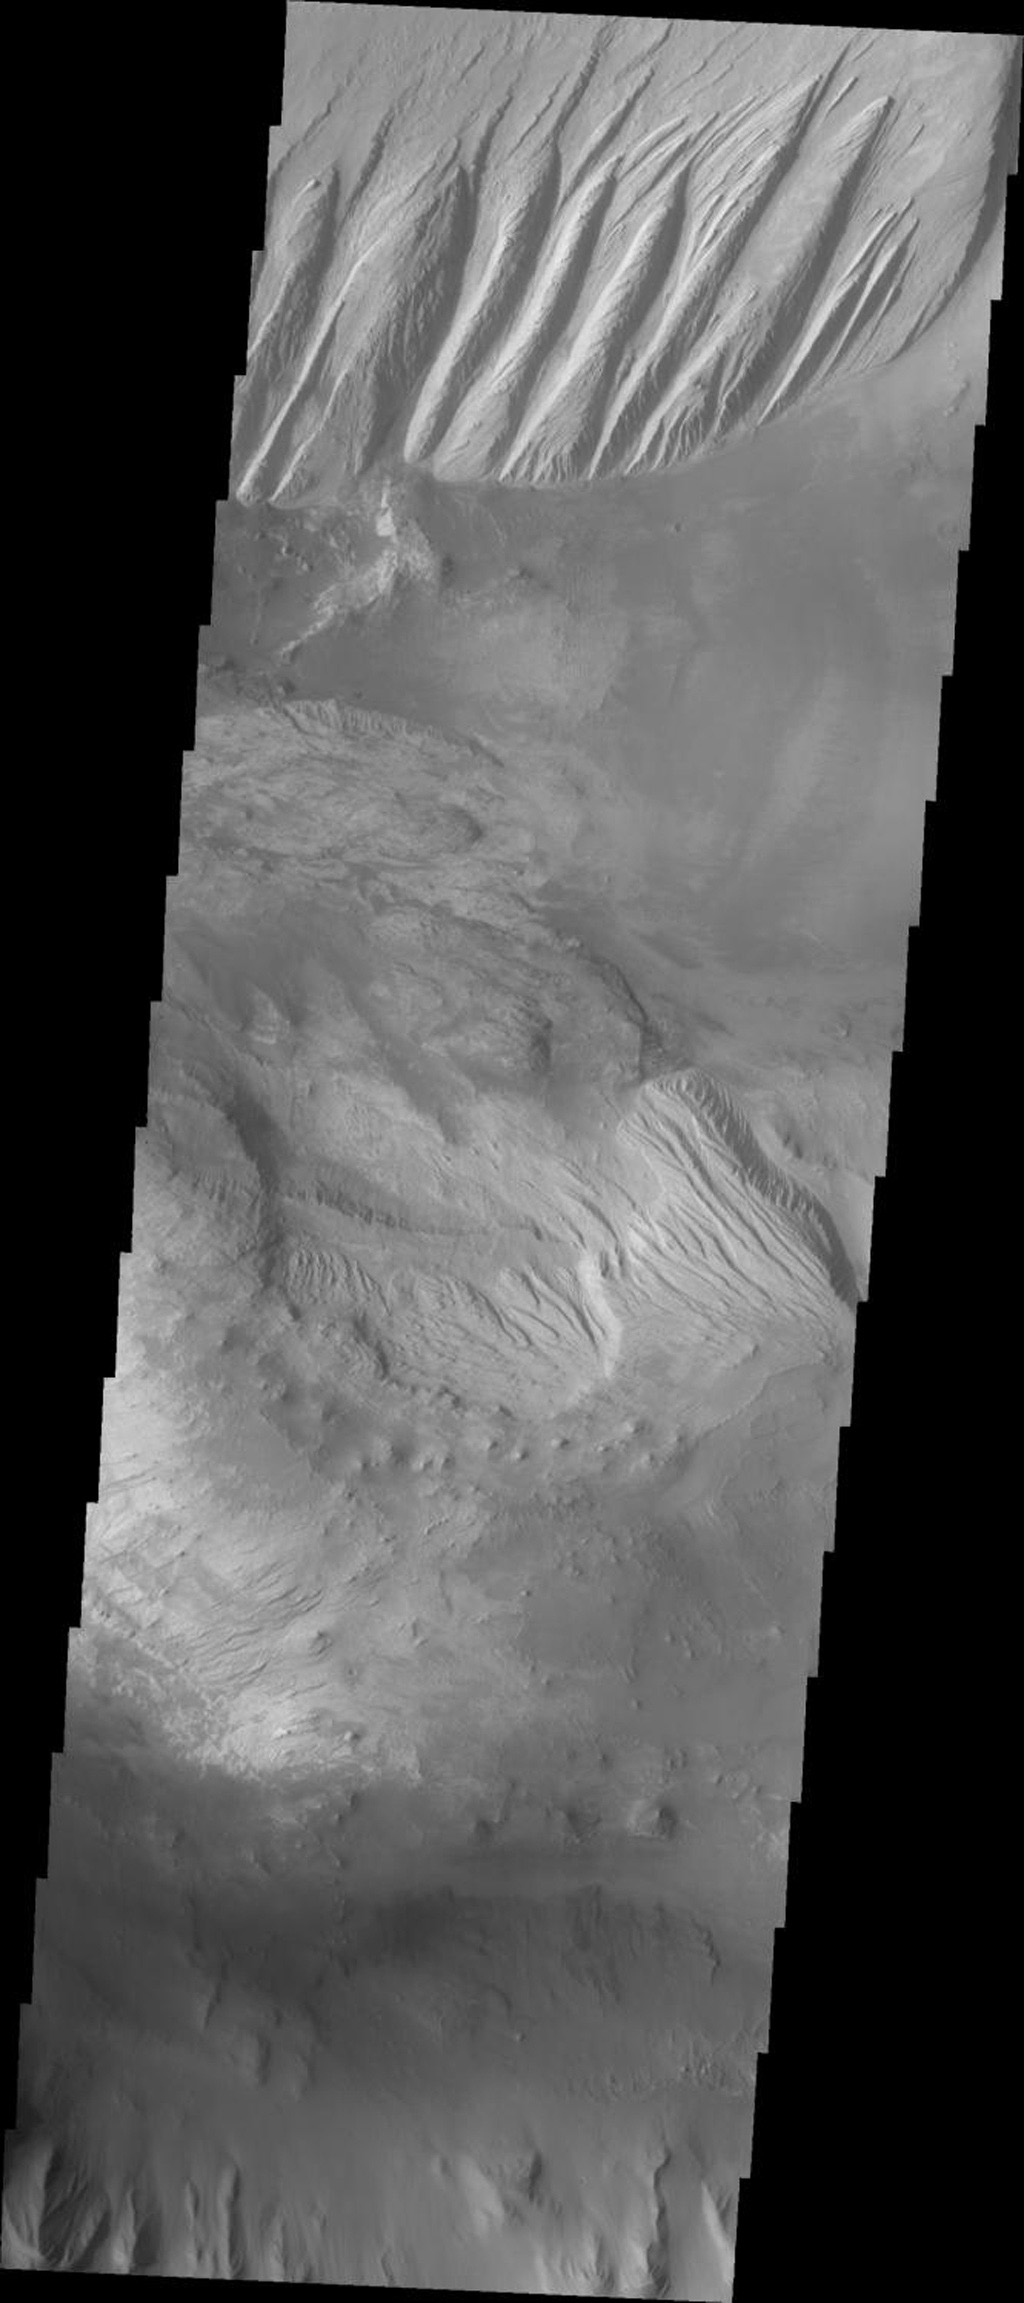 This image released on Oct 5, 2004 from NASA's 2001 Mars Odyssey shows an area on Mars in Candor Chasma. The imaged area is close to the depression that connects Candor and Melas Chasmas together.